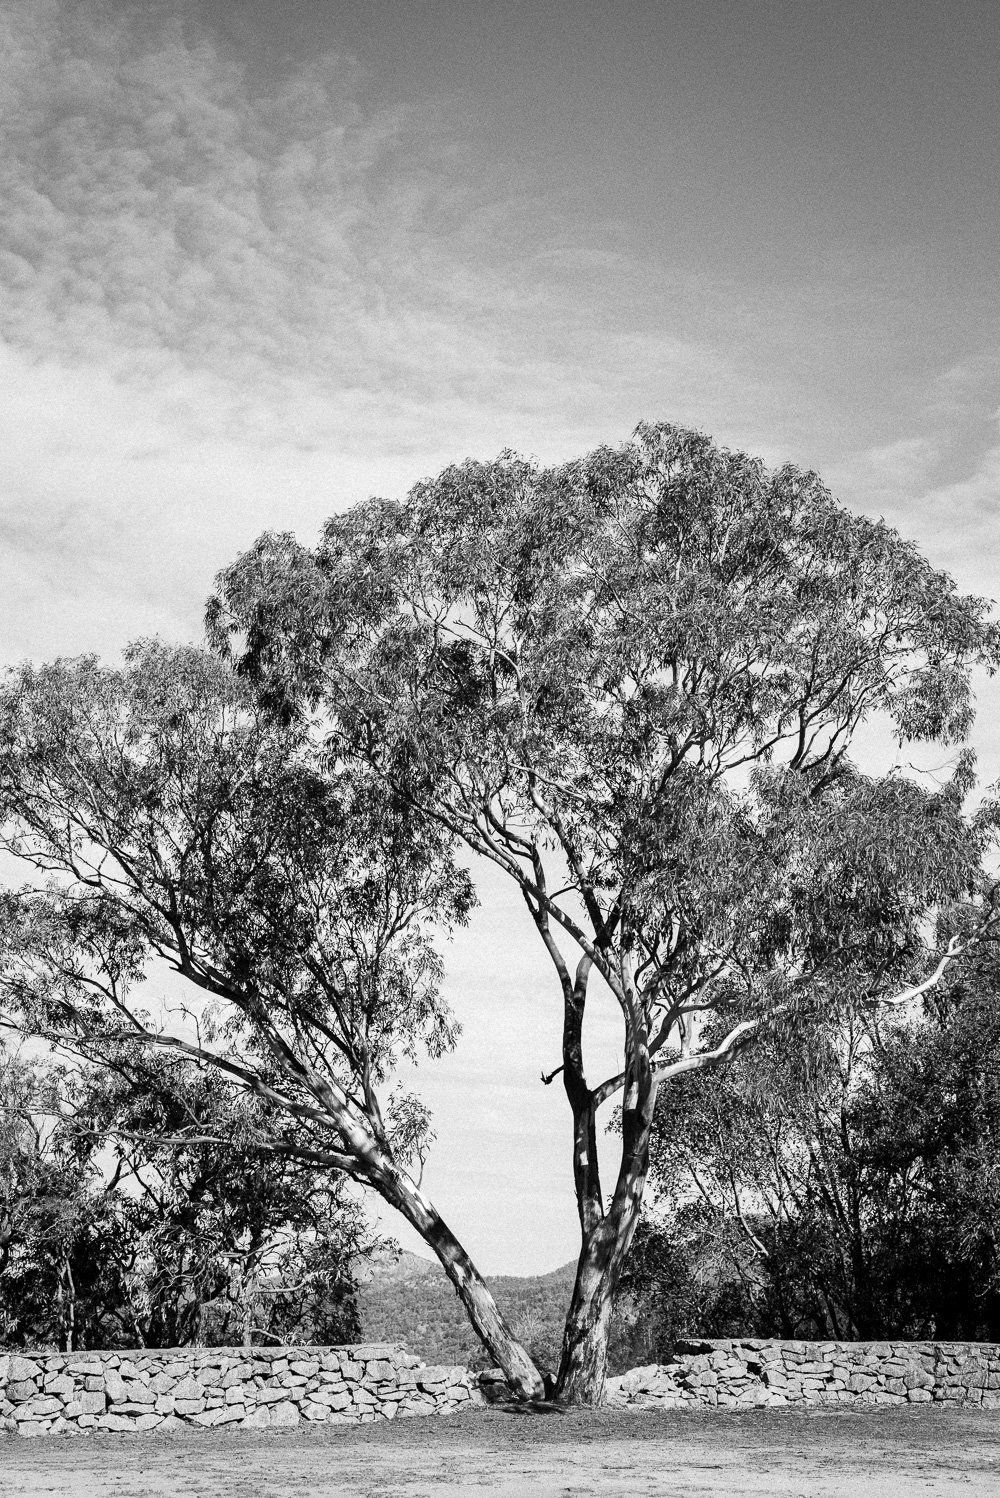 Moonbi Tree Photographic Print in B&W - Australian Travel Photographer Deb Boots